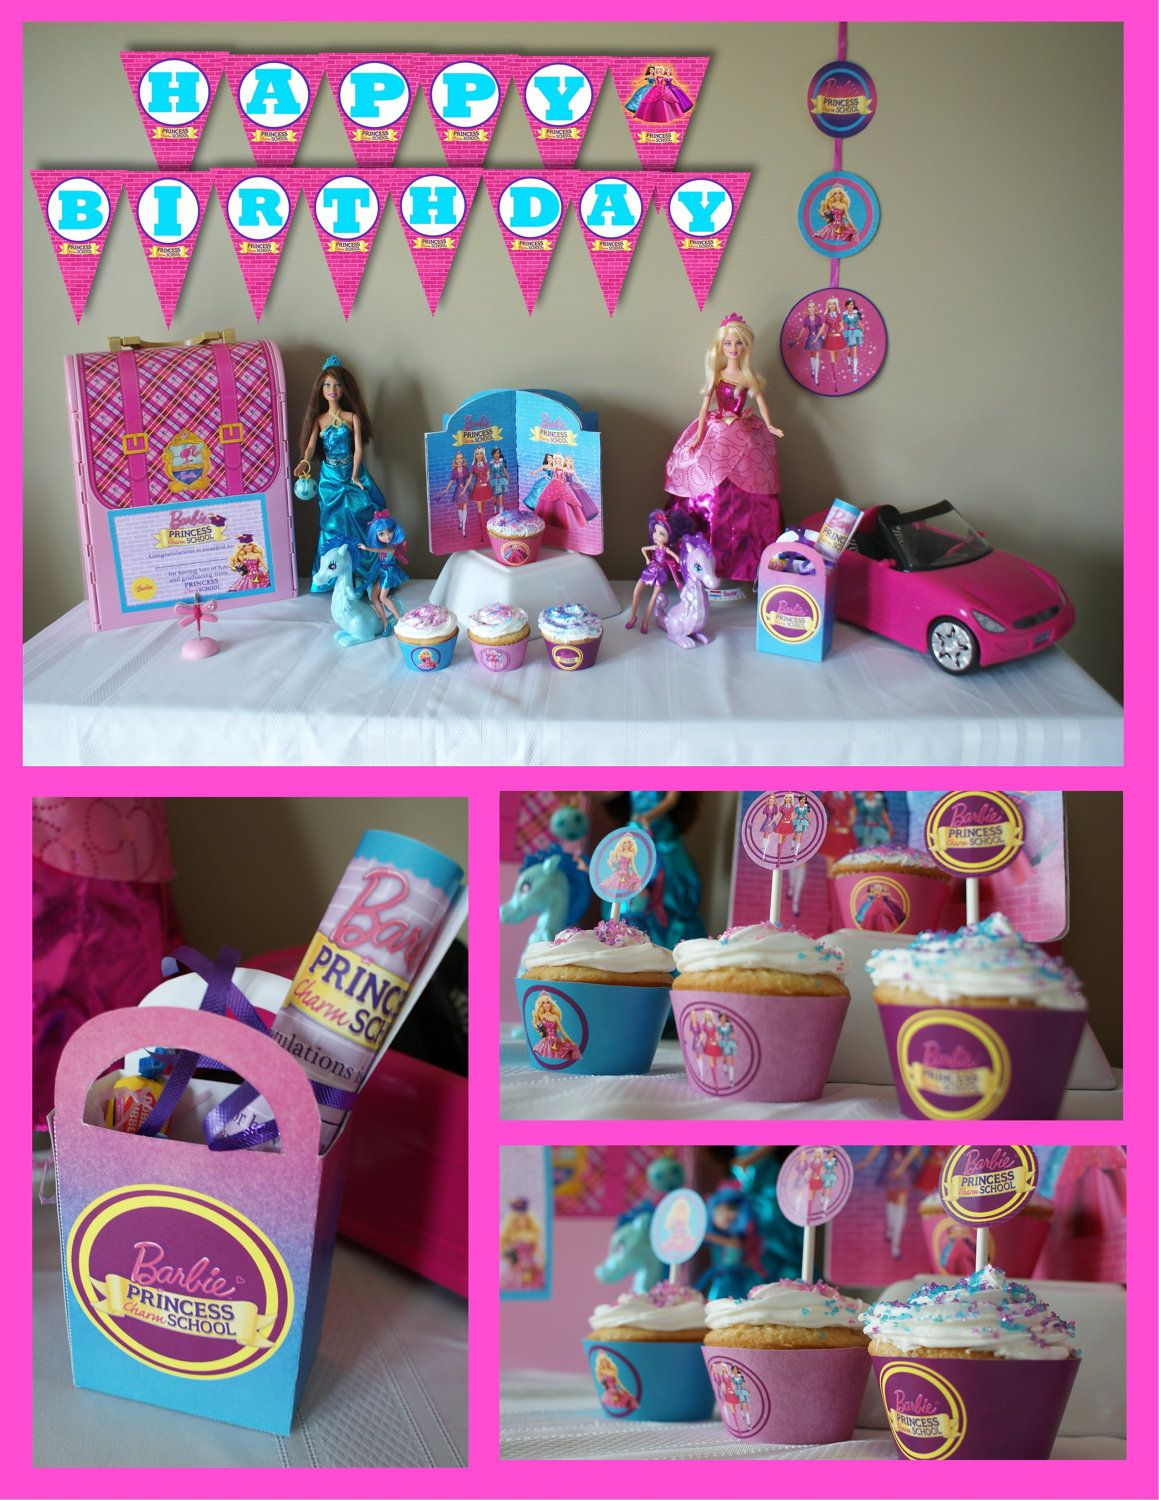 Barbie Princess Charm School Inspired Birthday Party